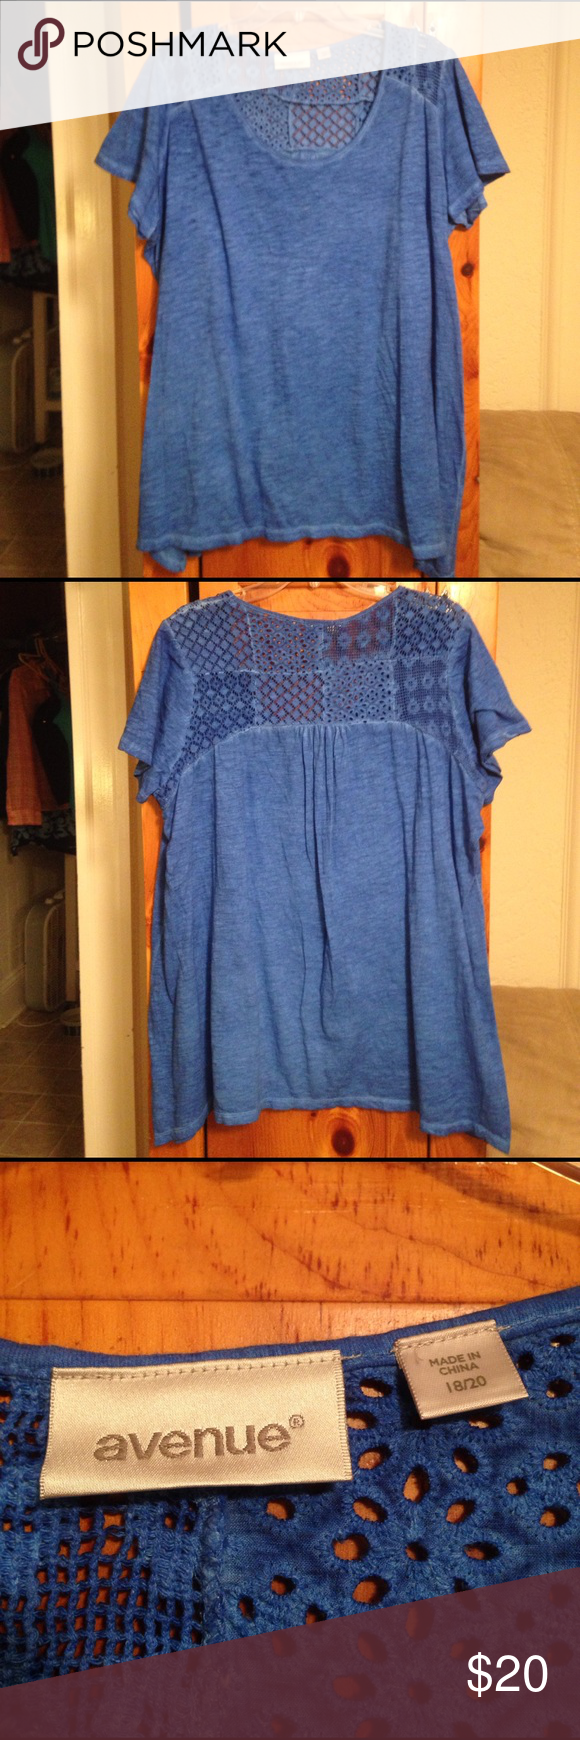 "AVENUE 100% COTTON LACE S/S BLOUSE TOP 18/20 2X SUPER PRETTY like new pre-owned excellent condition 100% cotton blue lace short sleeve top by AVENUE! Size women's plus 18/20 or 2X. Chest: 24.5"" across lying flat. Length: 29.5"" and 2 sides are 32"". Avenue Tops Blouses"